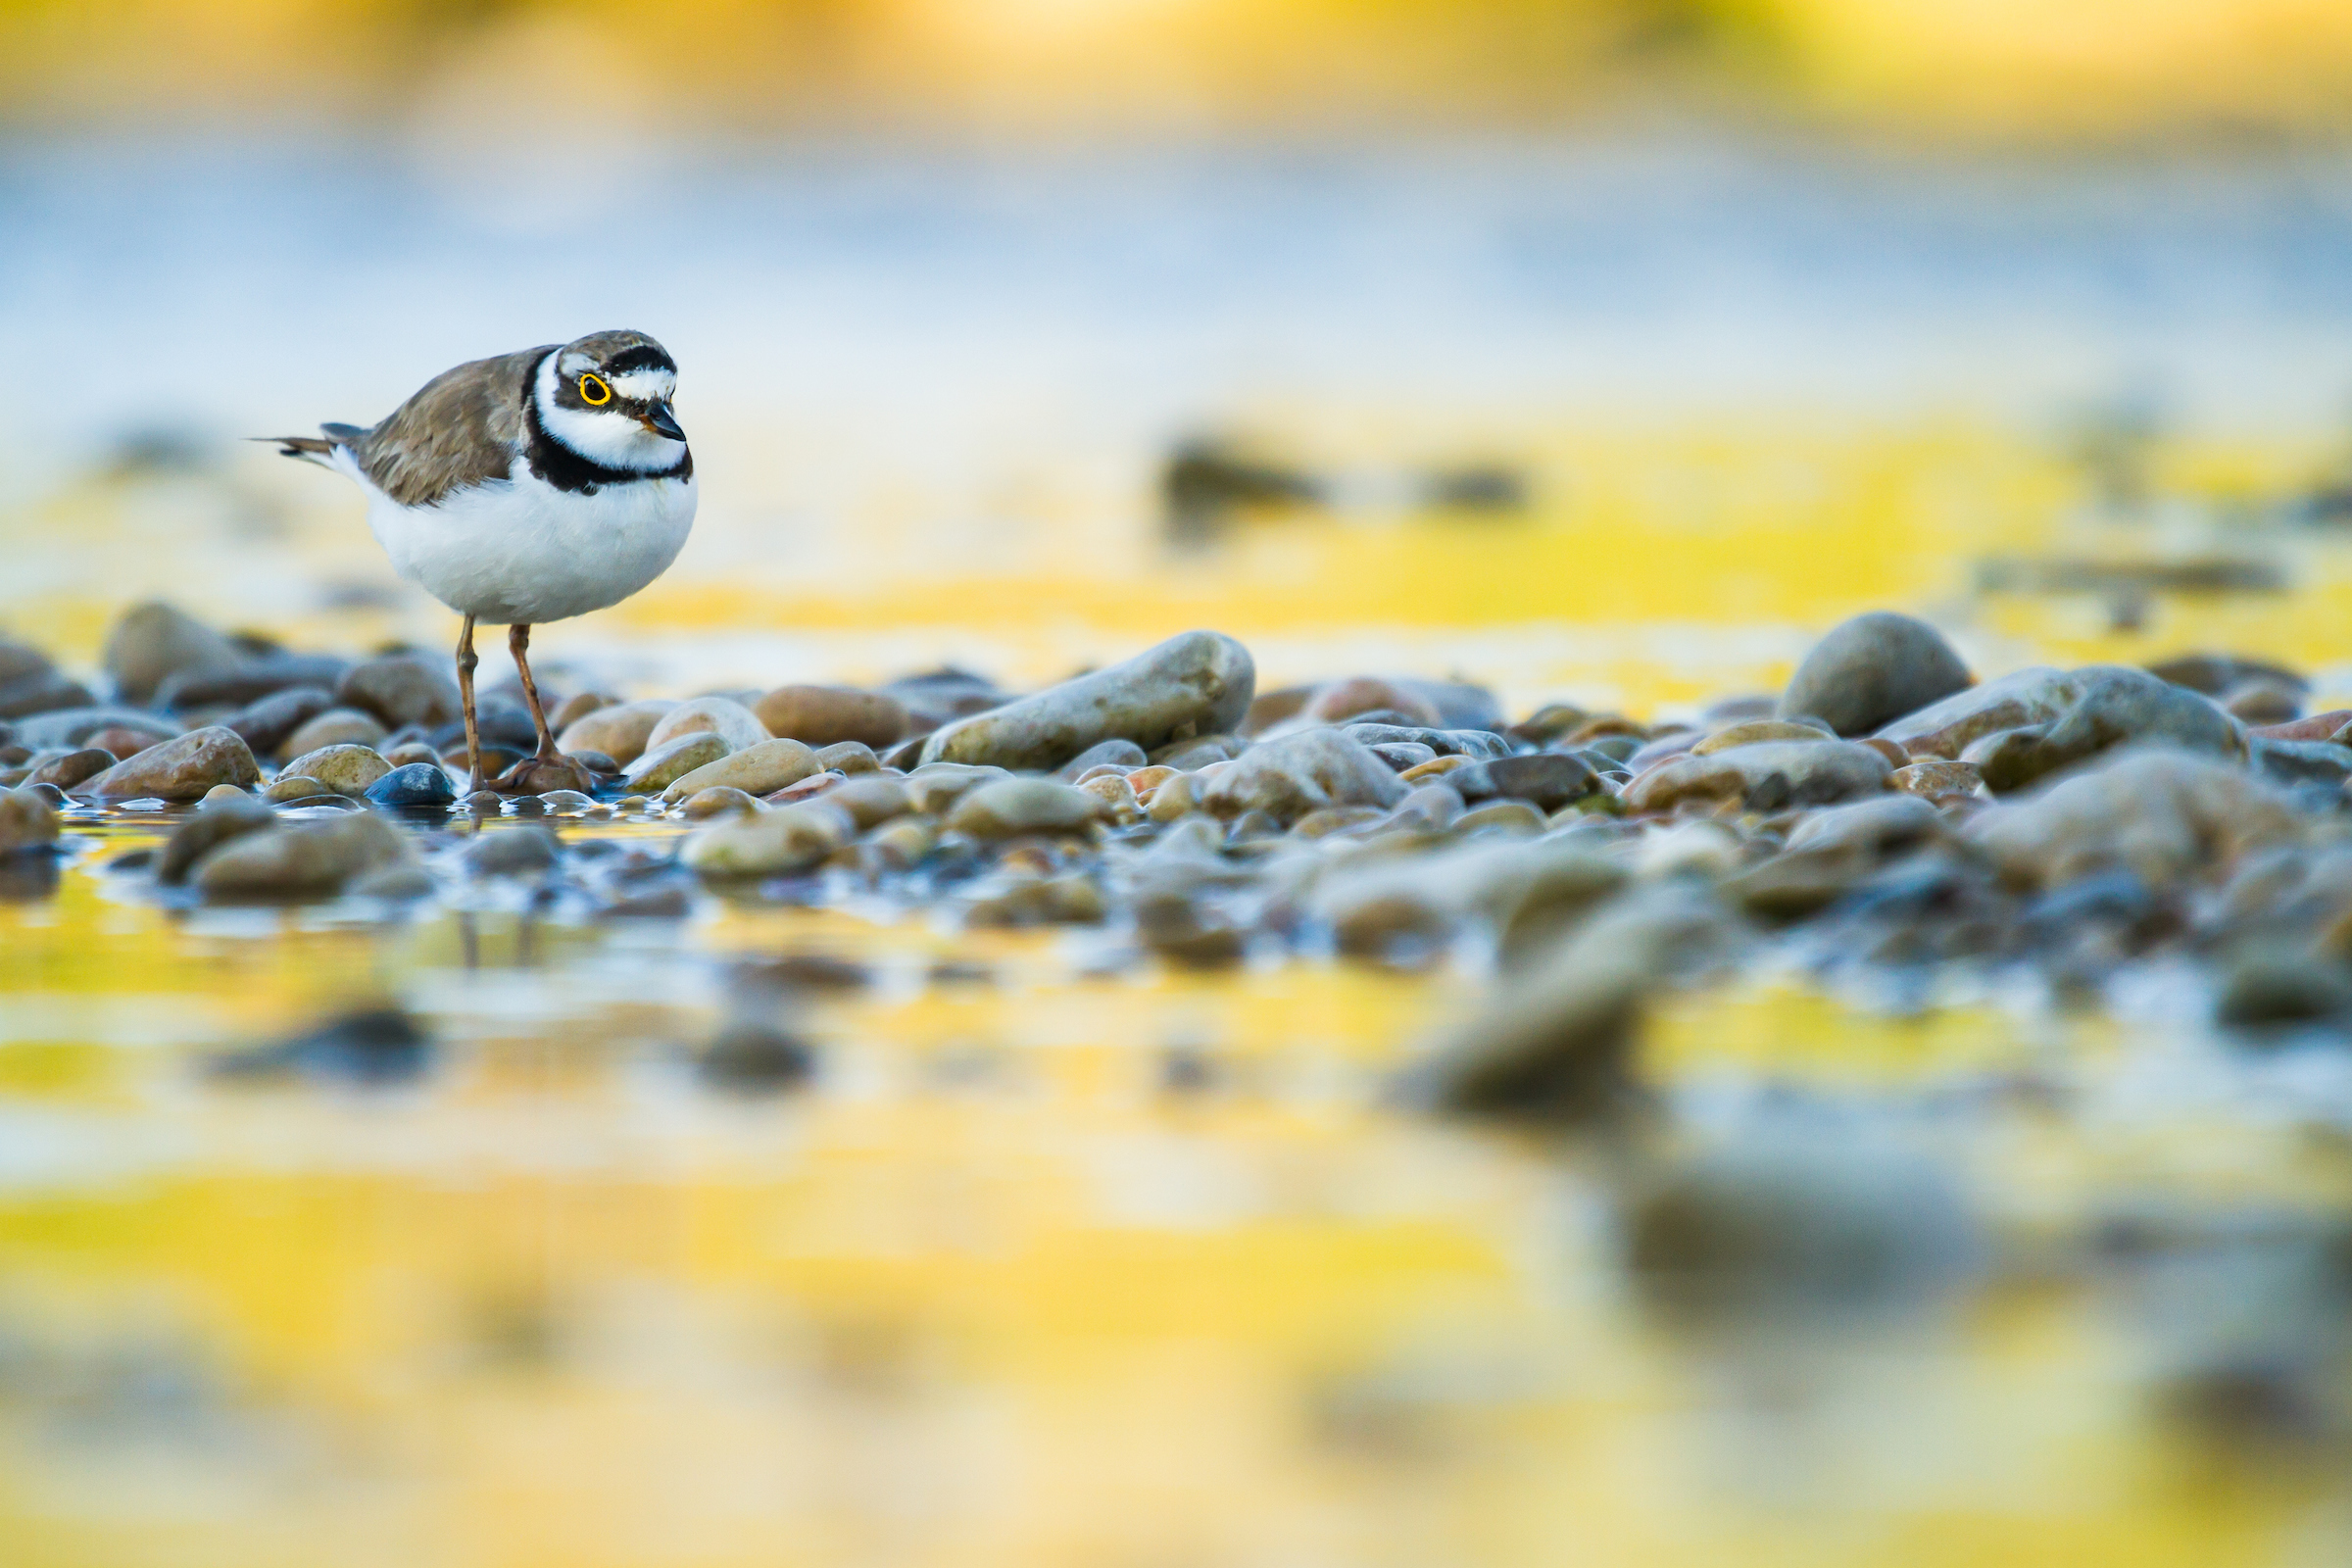 Bird Photographer of the Year Awards 2015 Caption: Little ringed plover Category: Birds in the Environment Photographer: Marc Albiac Taken on: 22/6/2013 Email: marcalbiac@gmail.com Address: Paseo Doctor Moragas, 157, 2-1, Barbera del valles, Spain, 08210, Spain Telephone: +34 636058702 Description: Little ringed plover in its environment, the river. Date: 2013-06-22 Location: Aragón, Spain I give my permission for this photograph to be added to the bto archive: true I confirm that this is not a captive bird: true